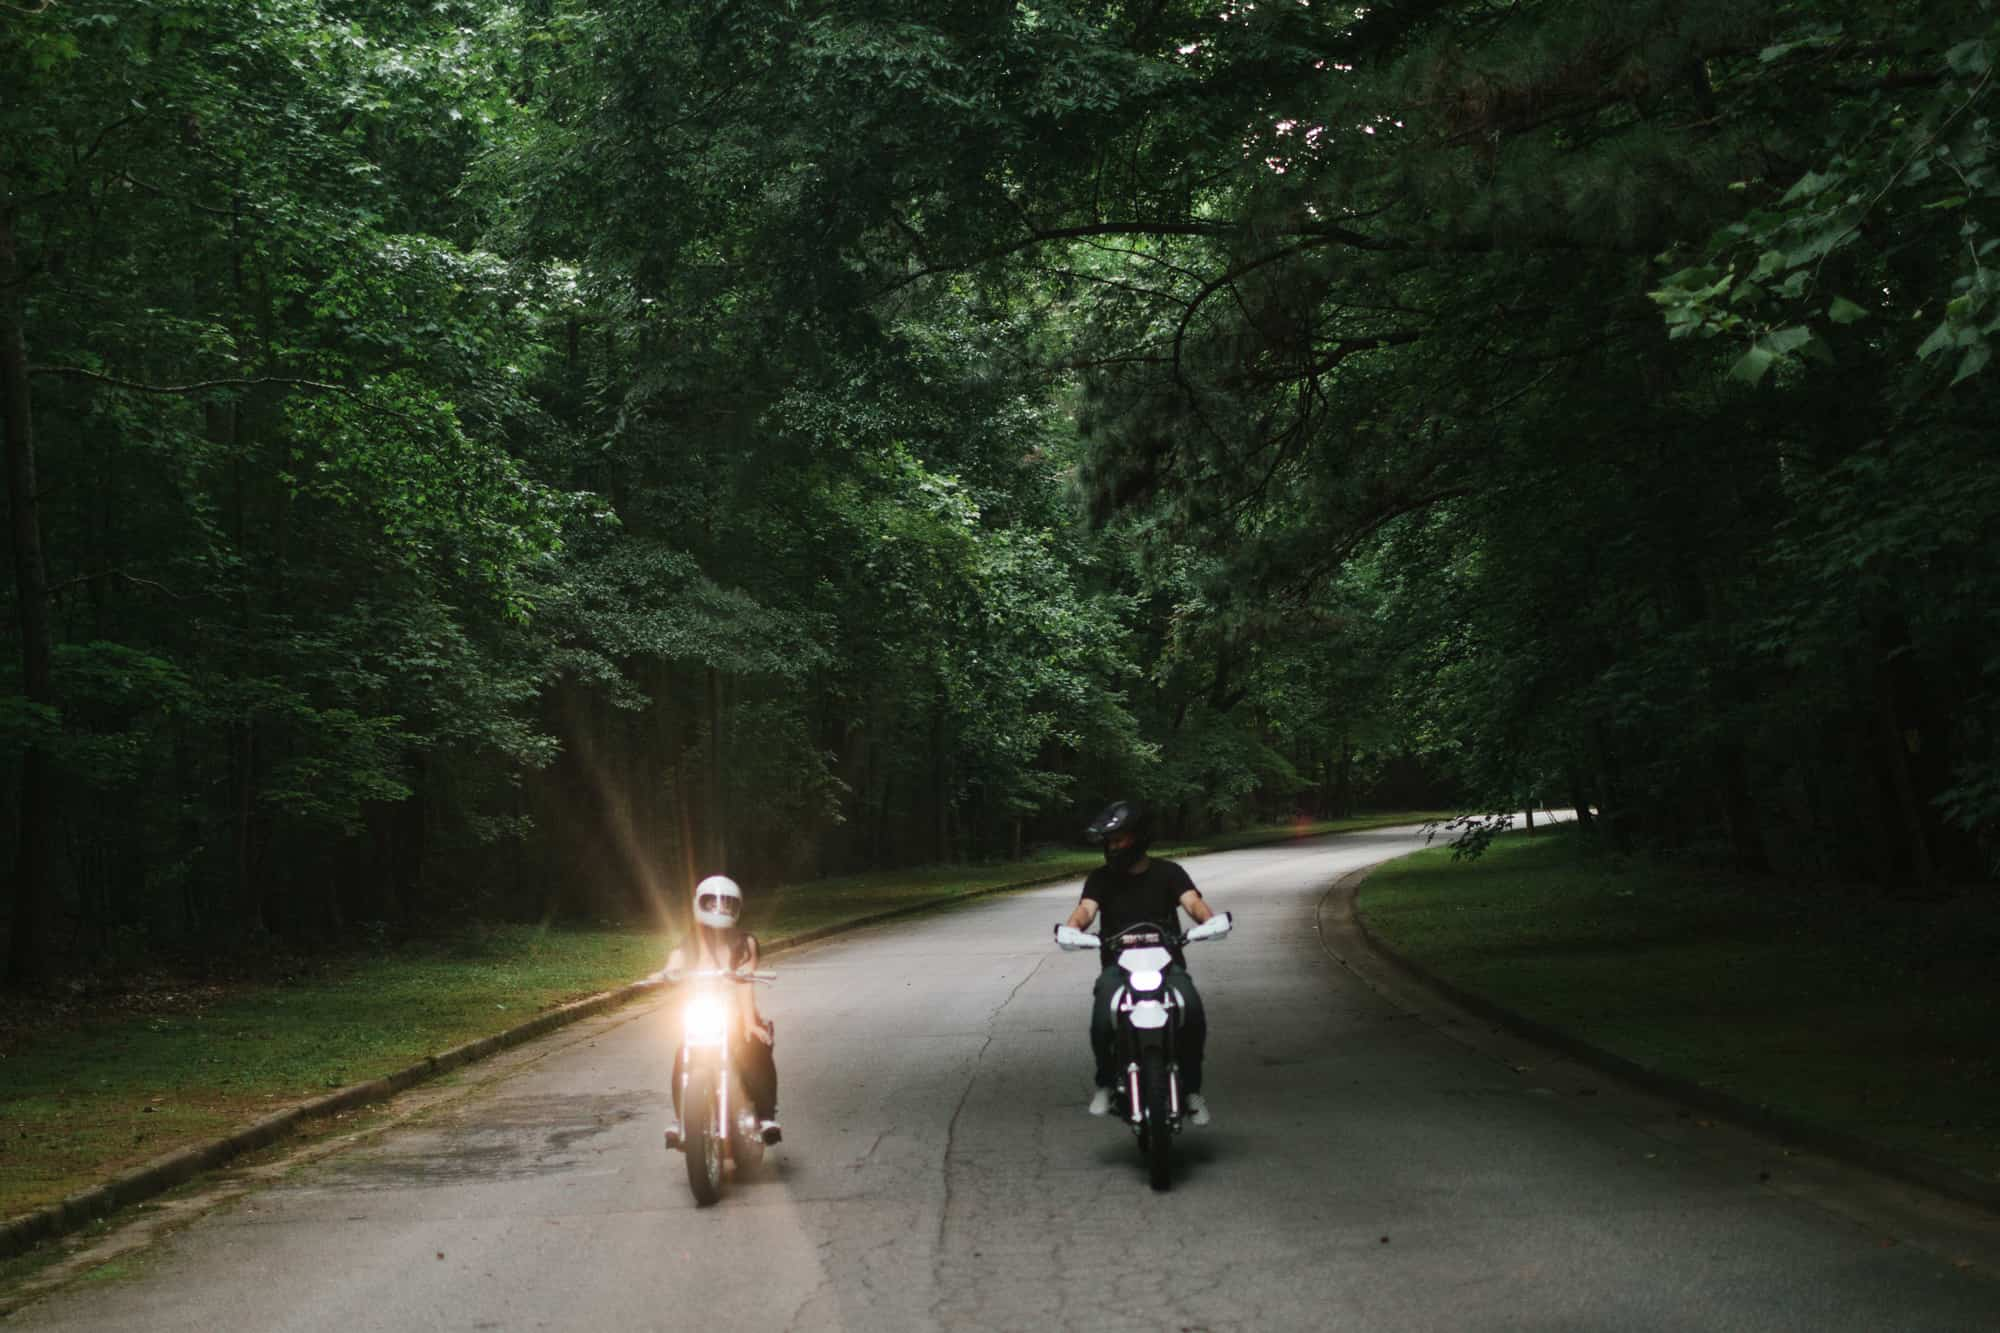 Atlanta motorcycle engagement session by Kate Lamb of Wild in Love Photo